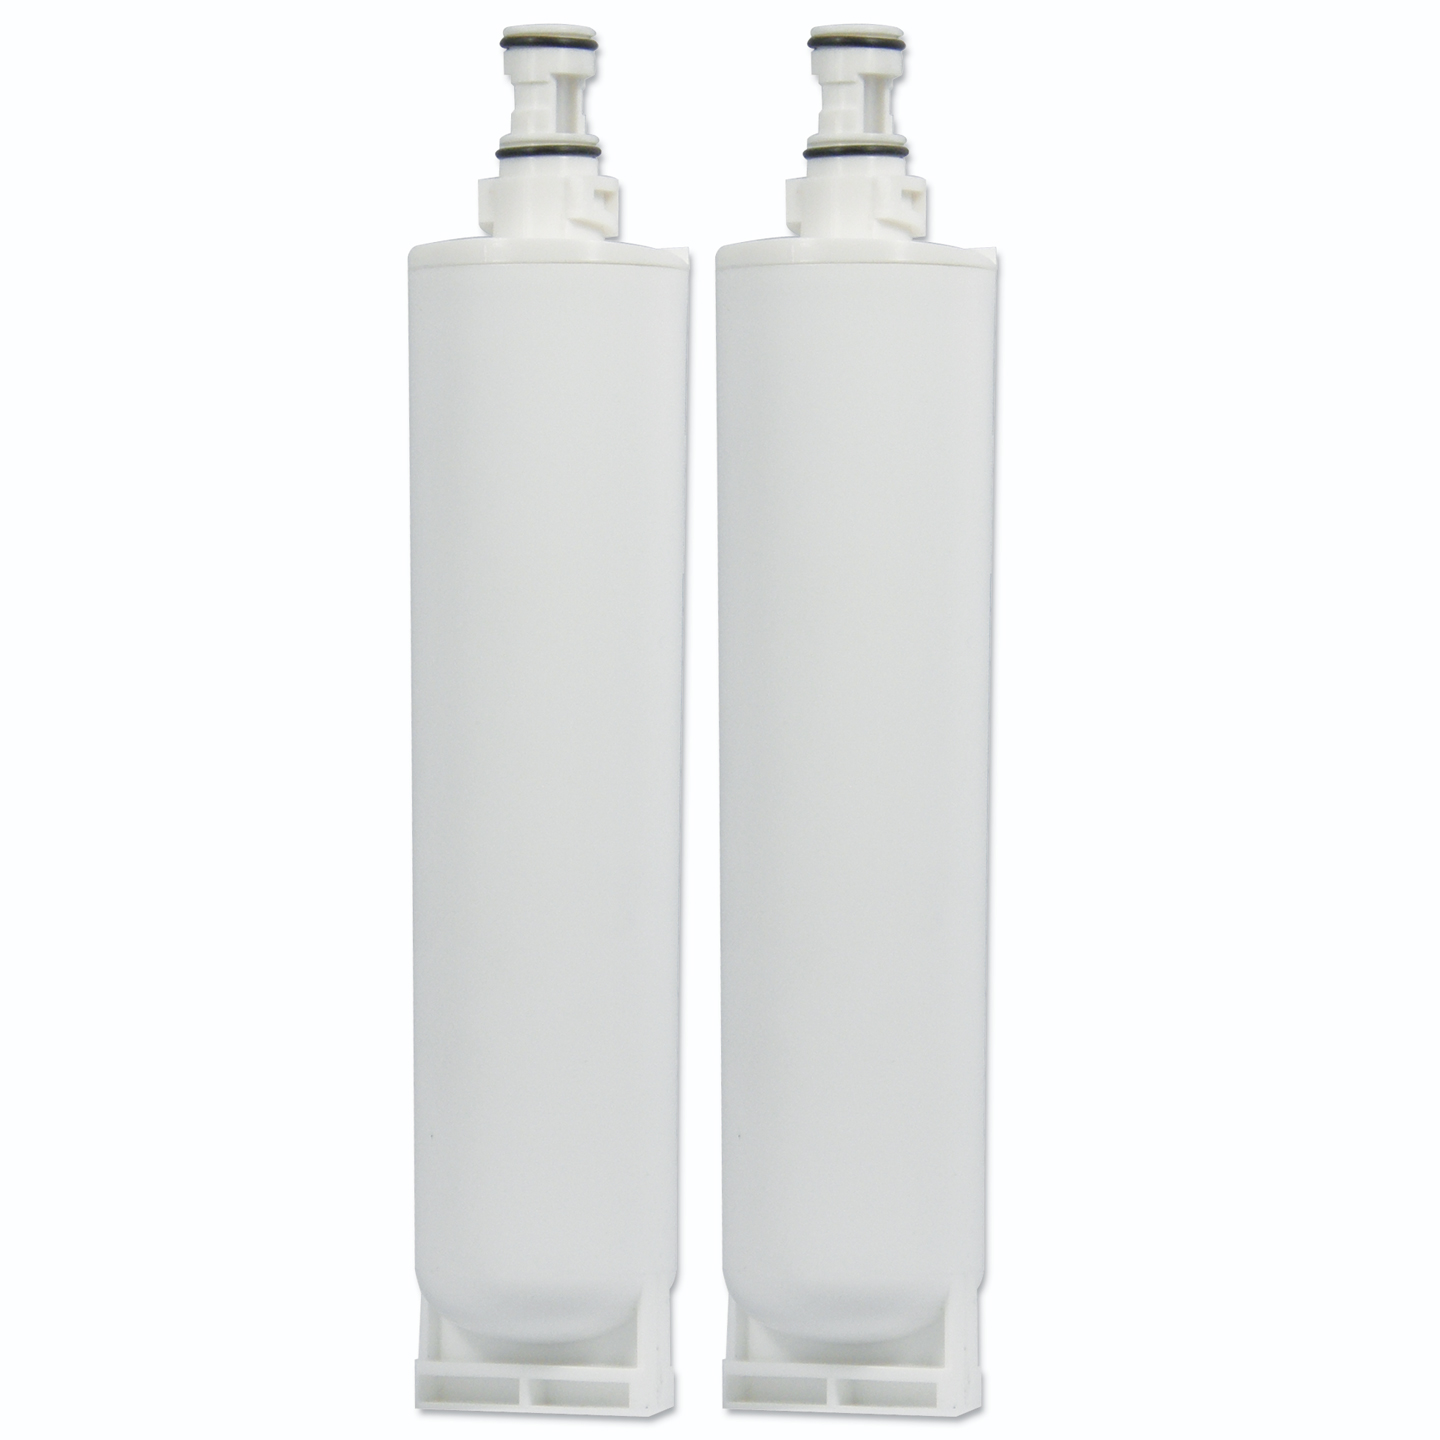 Whirlpool Refrigerator Water Filter 4396510: Comparable Replacement by Water Sentinel